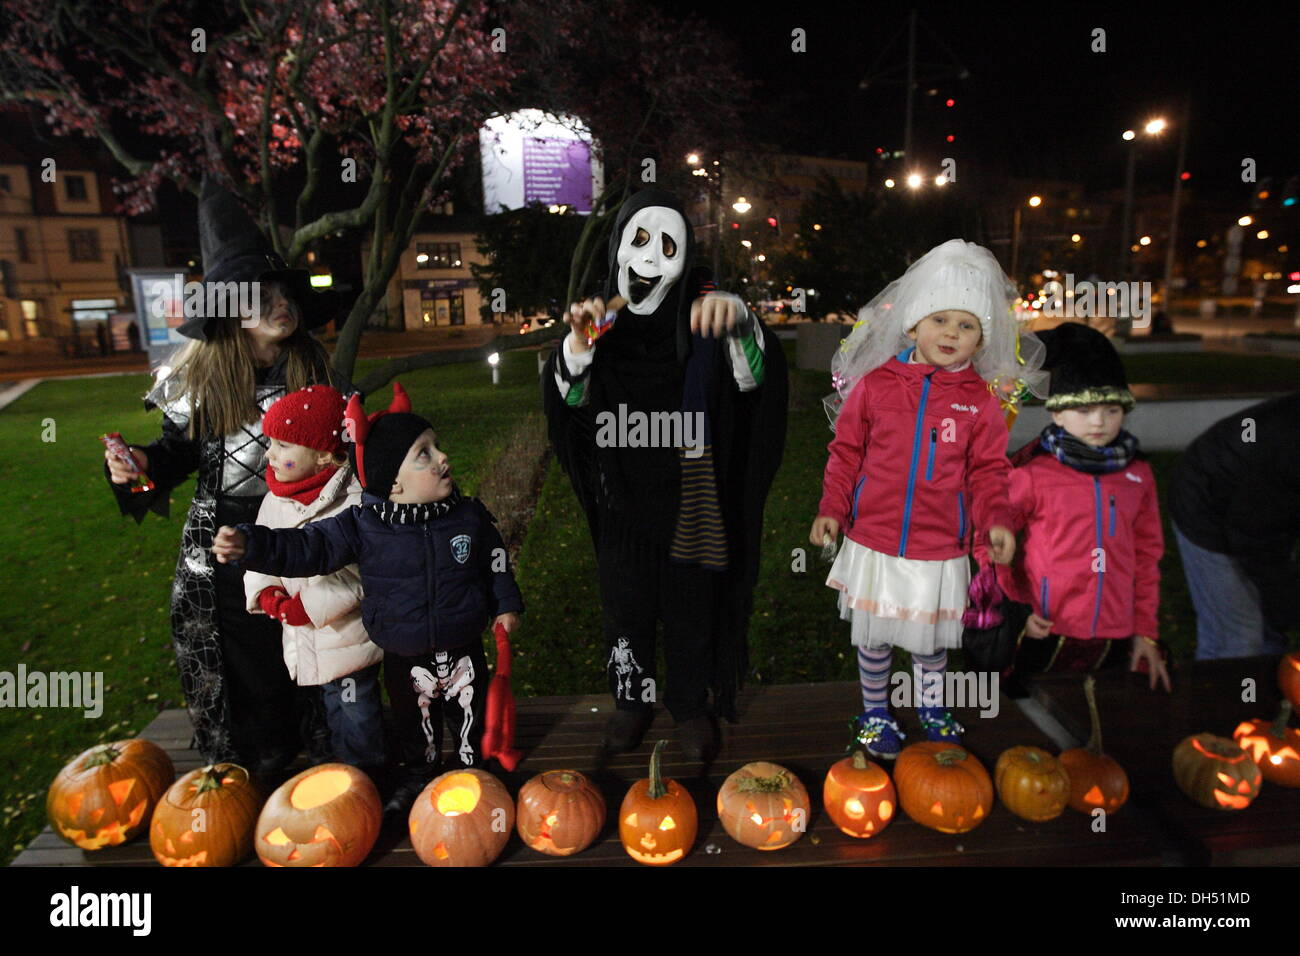 Gdynia, Poland 31st, October 2013 Halloween day celebrated in ...